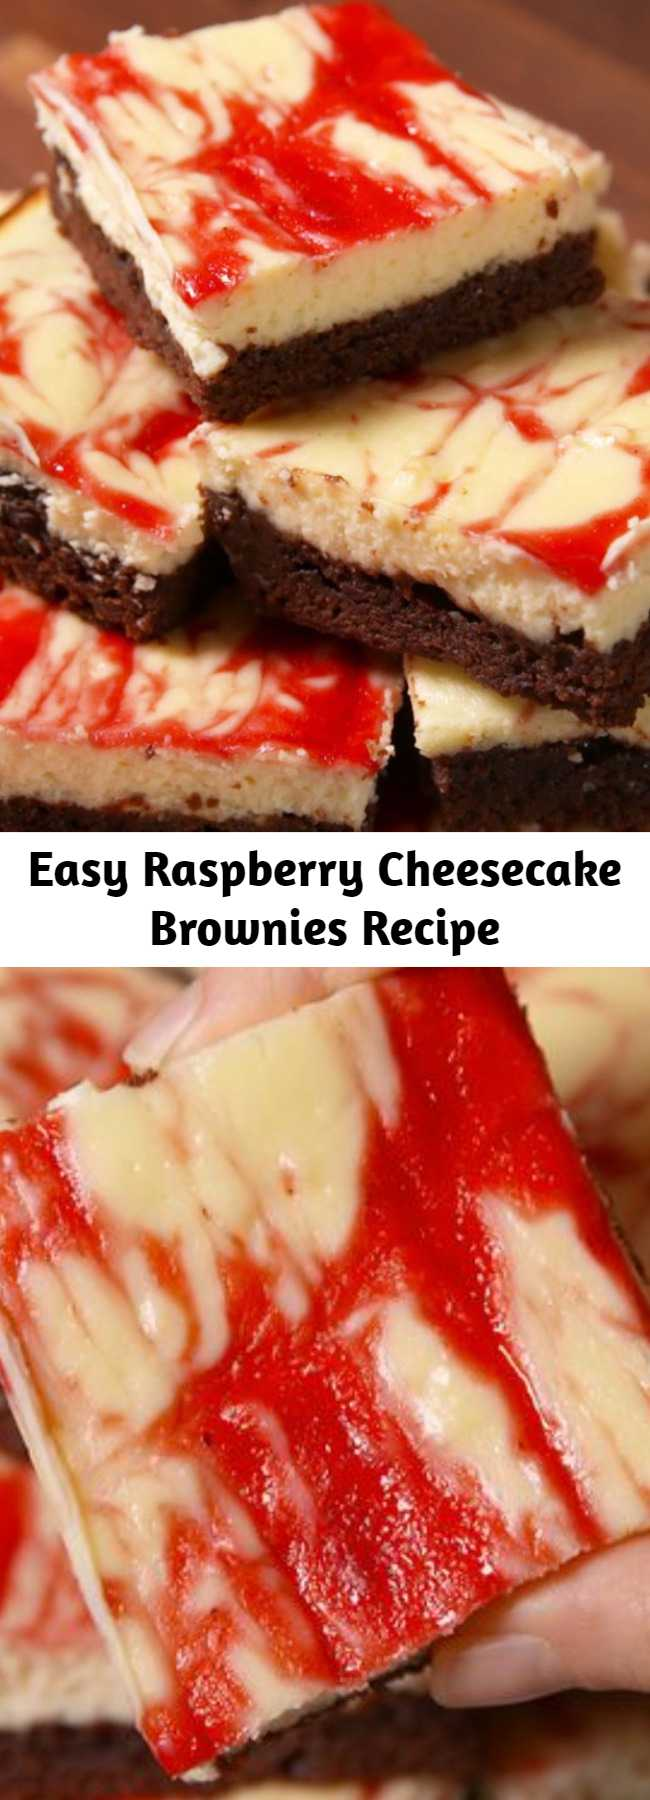 Easy Raspberry Cheesecake Brownies Recipe - Be a dessert superhero and make this easy recipe for raspberry cheesecake brownies.